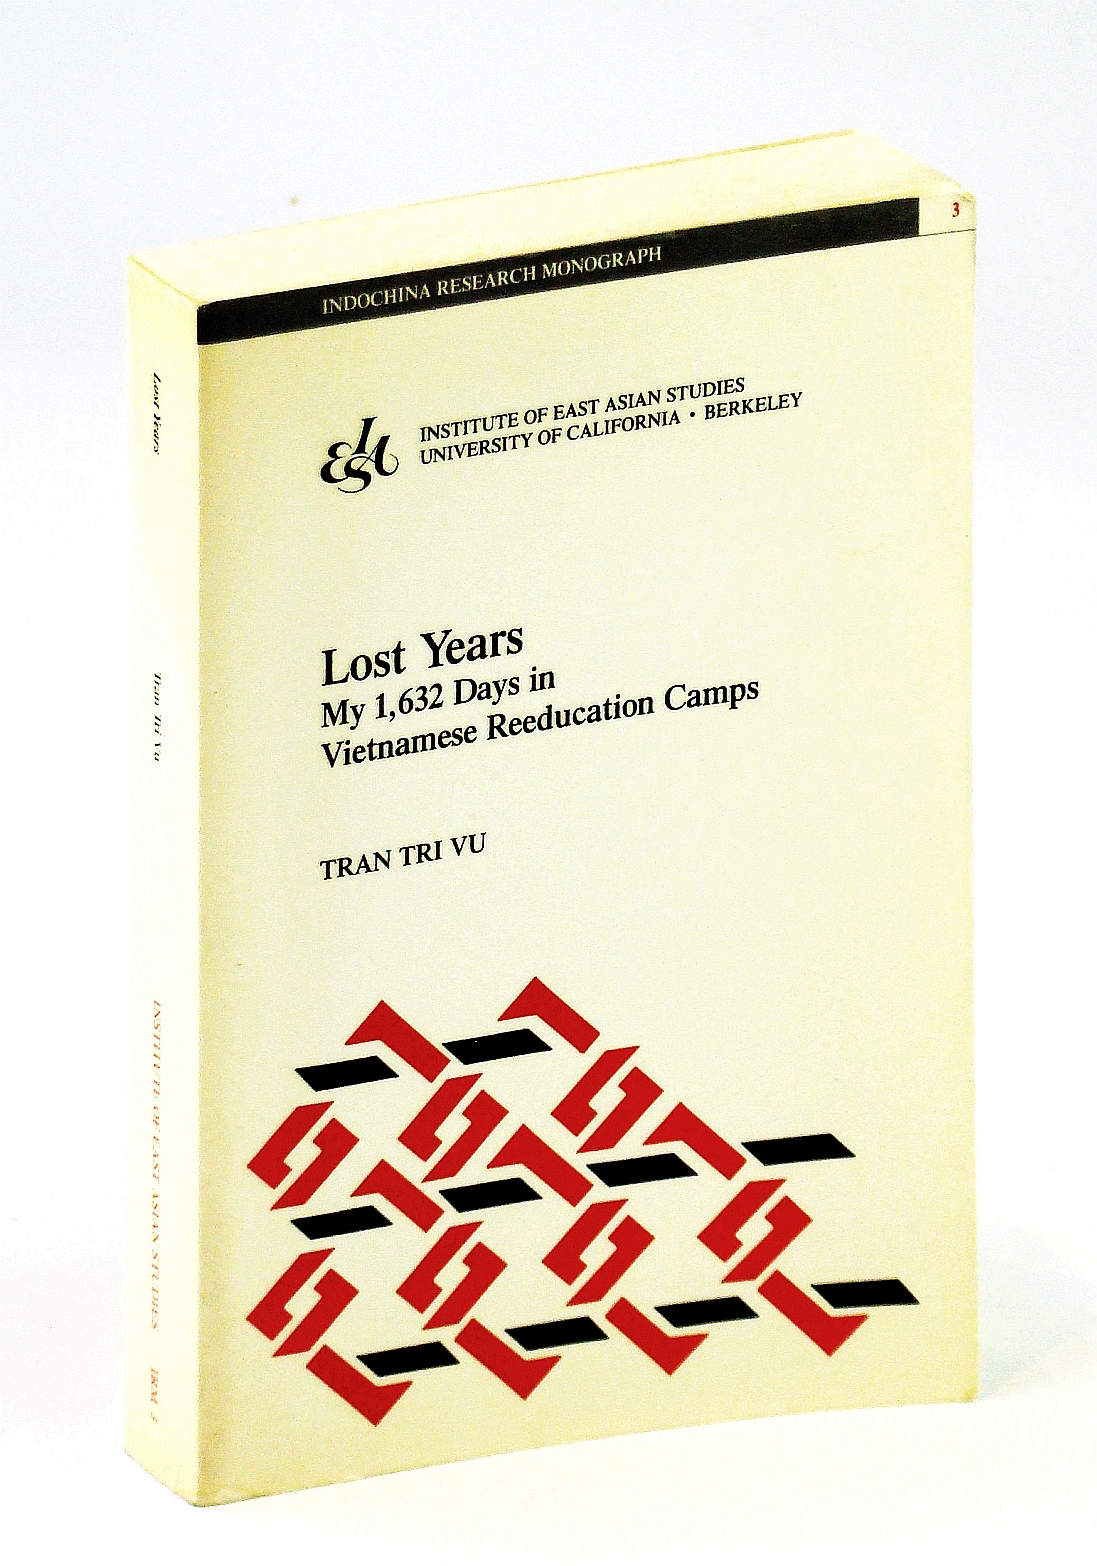 Image for Lost Years: My 1,632 Days in Vietnamese Reeducation Camps (Indochina Research Monographs, No 3)